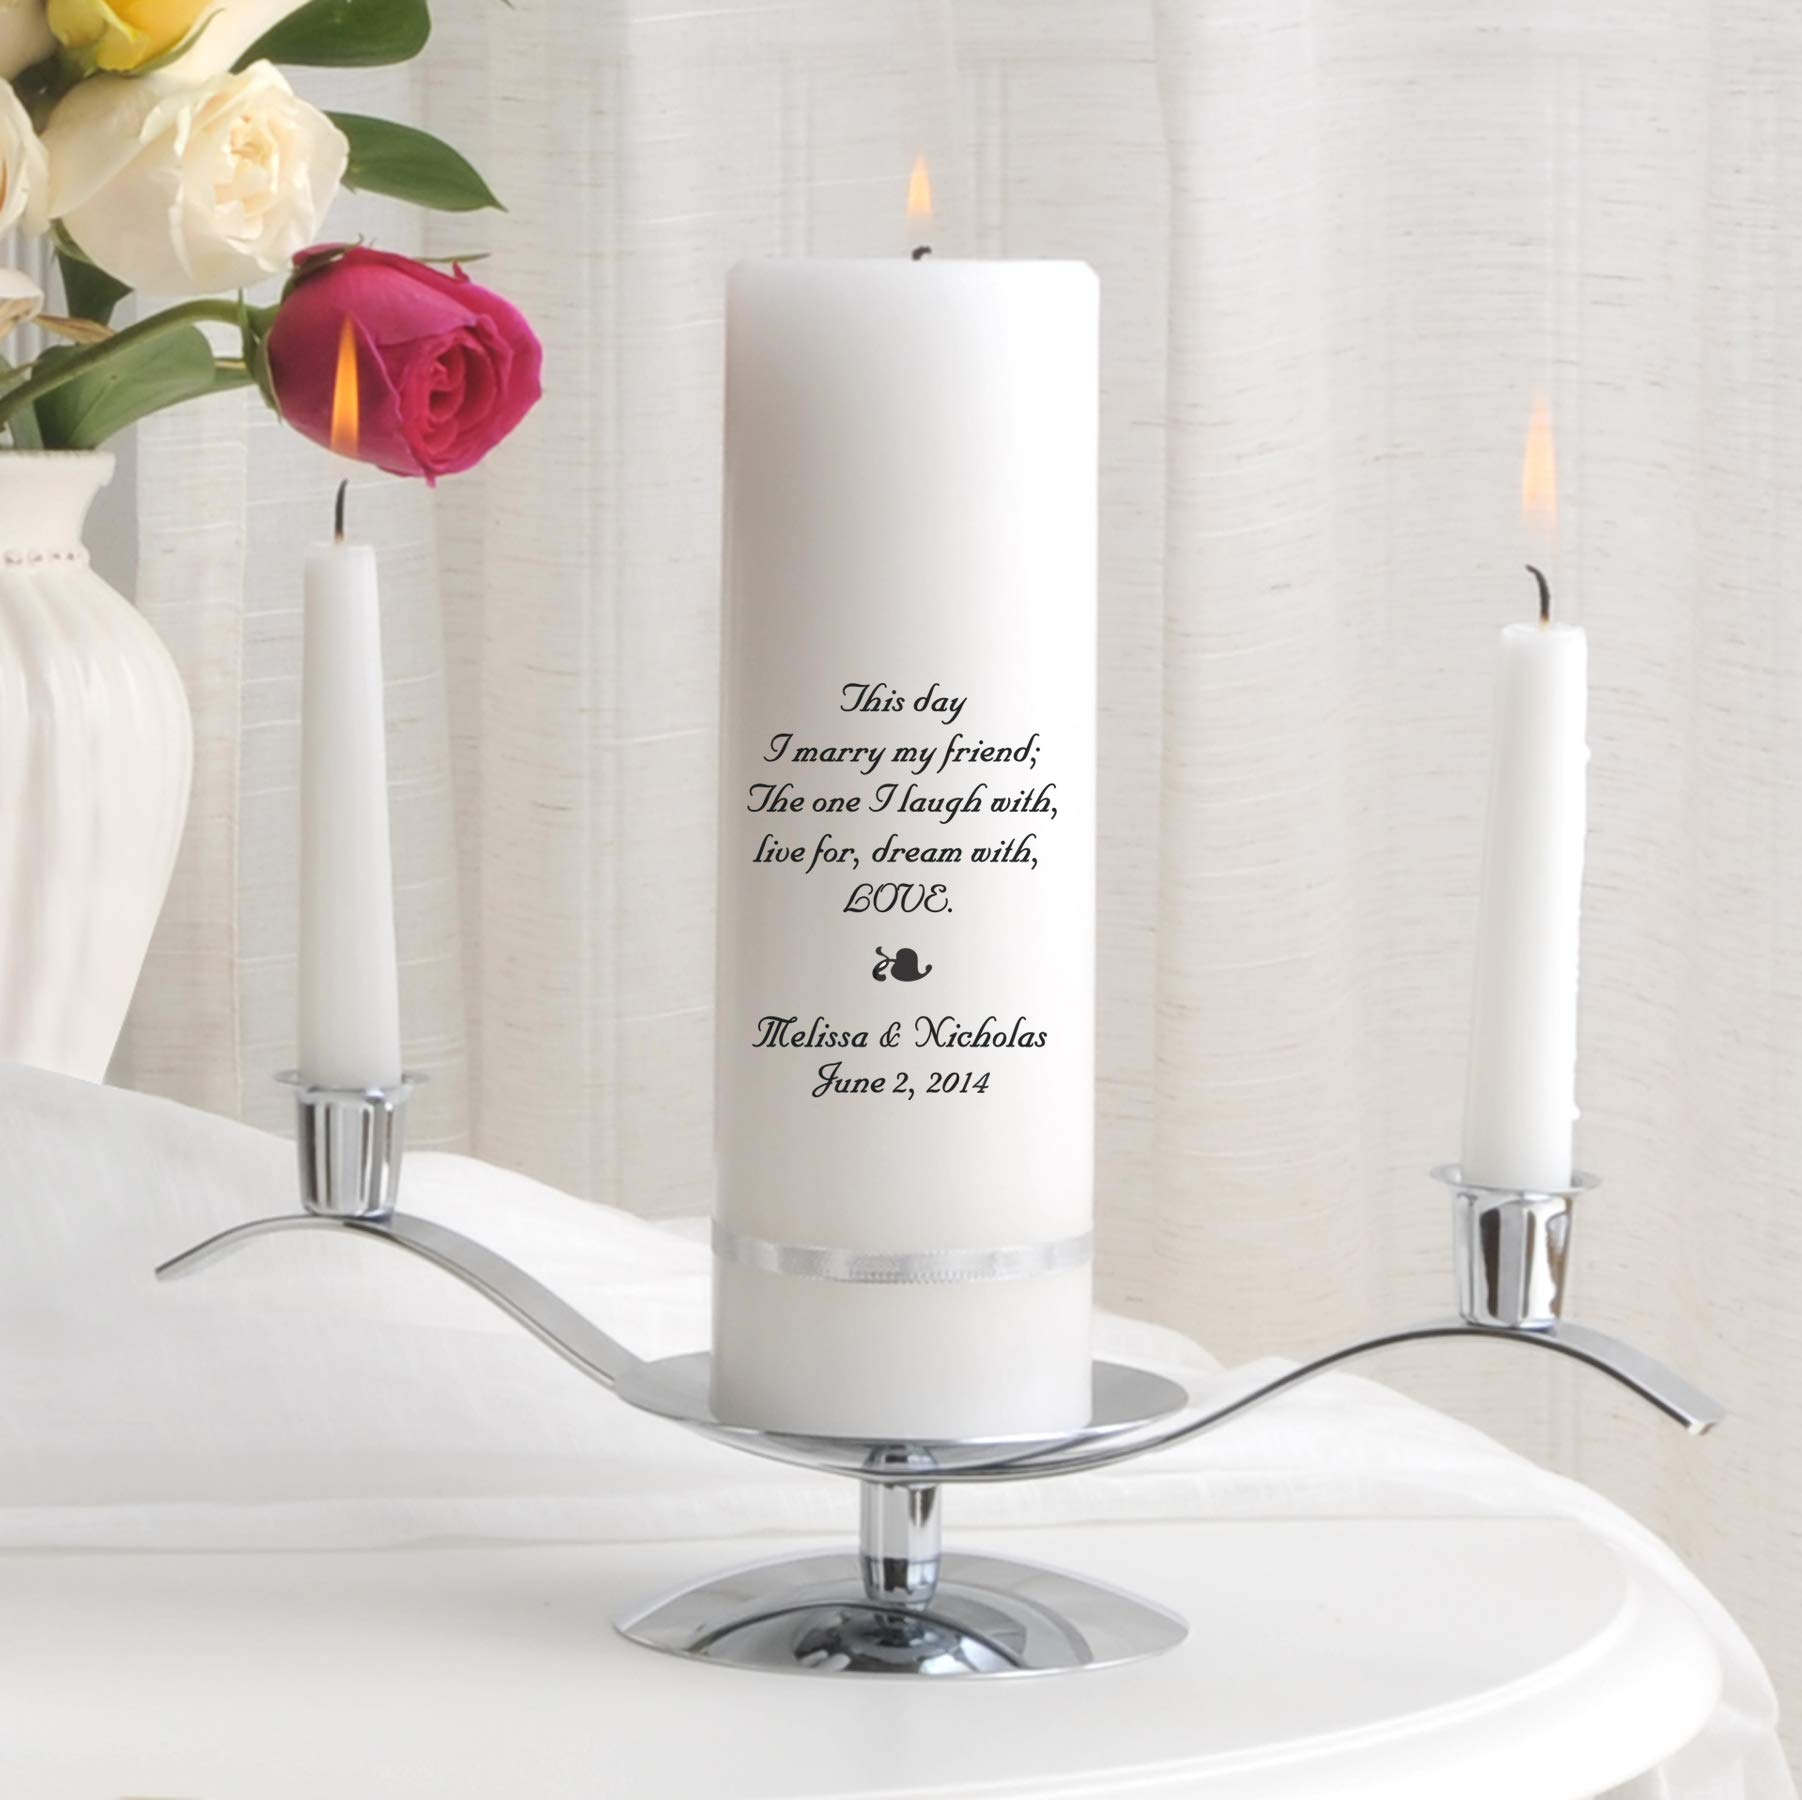 Personalized Unity Wedding Candle Set - Personalized Wedding Candle - Includes Stand - This Day